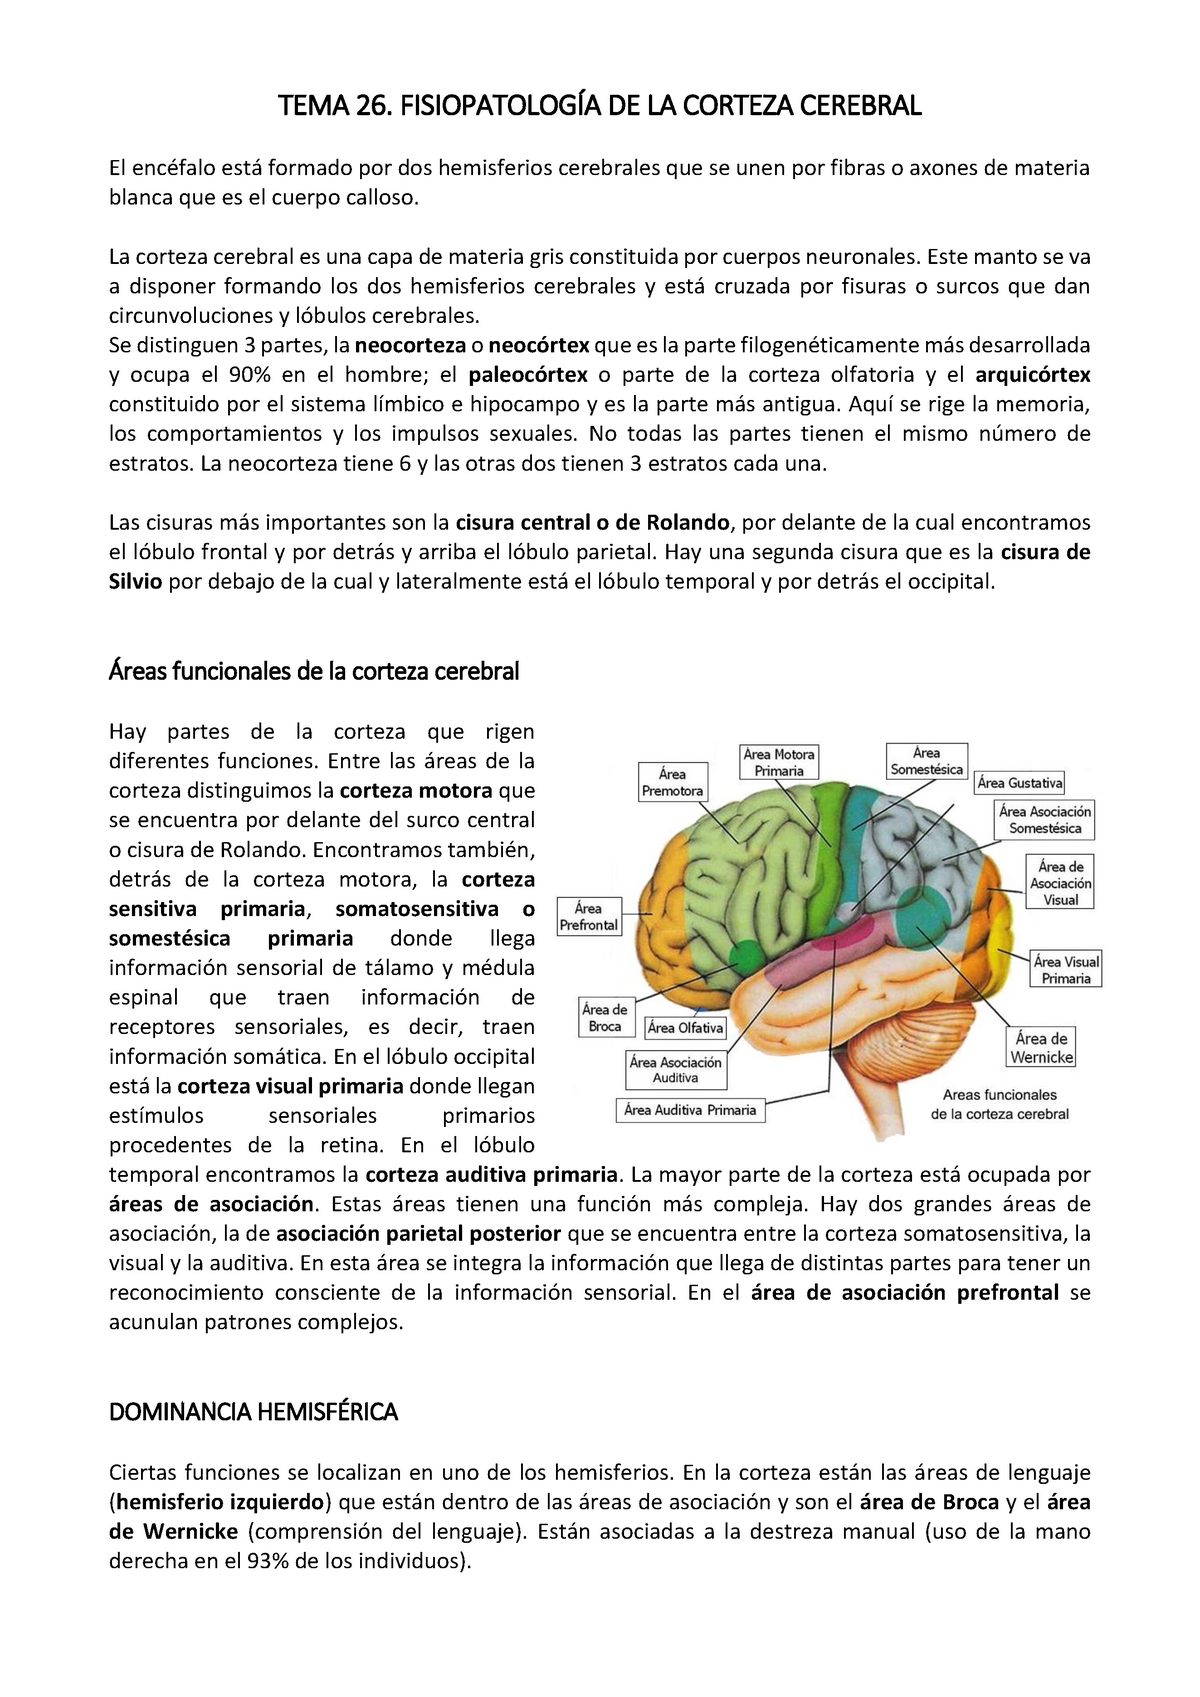 Area De Broca Y Wernicke Pdf Download